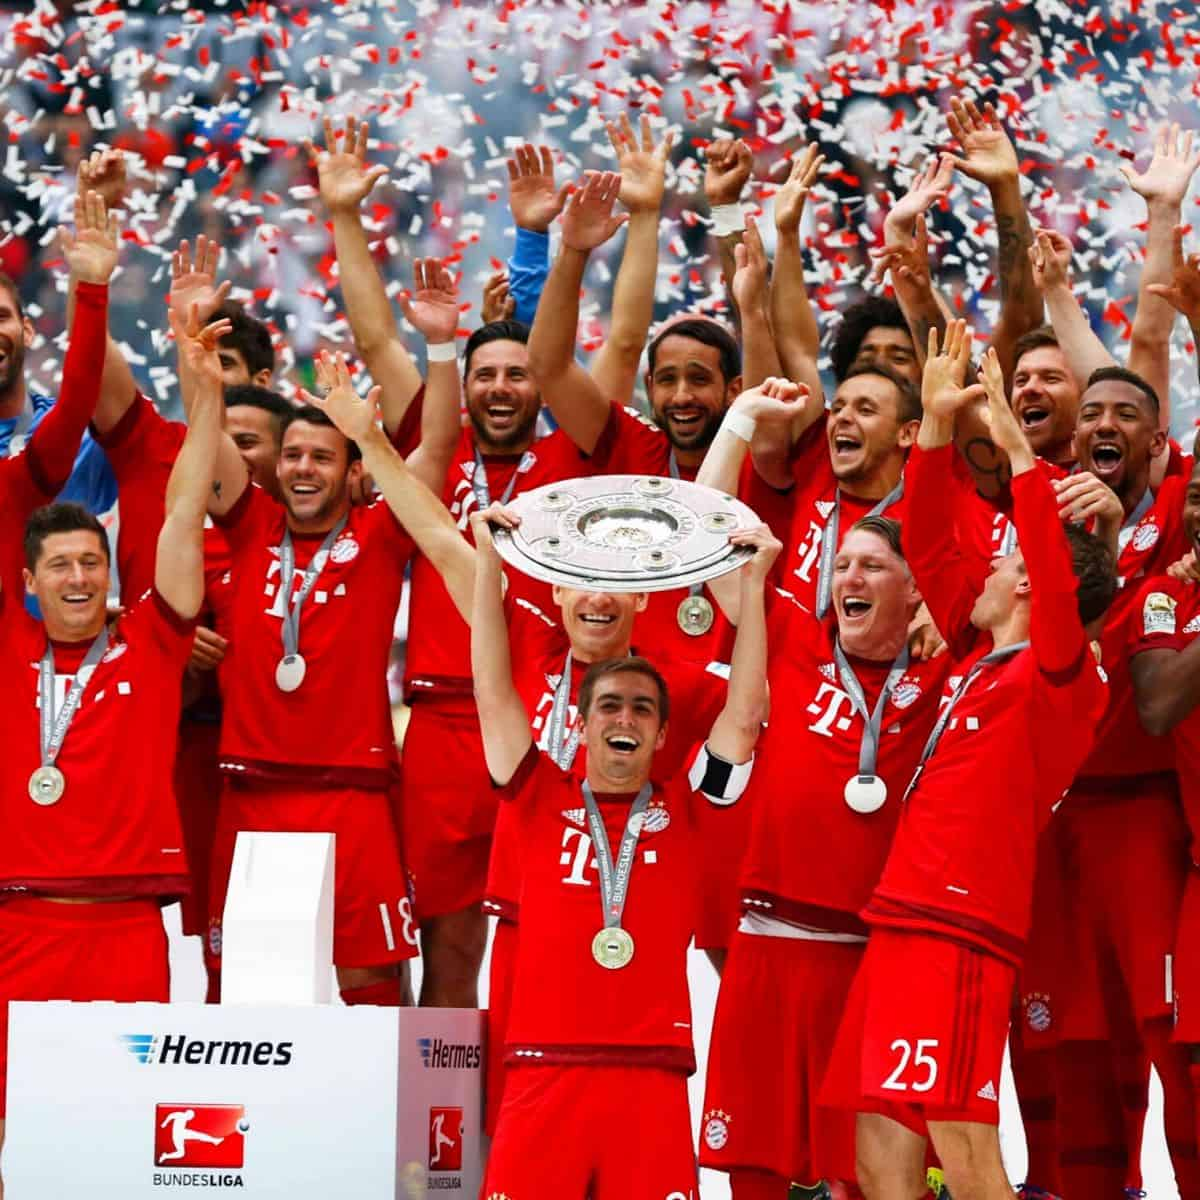 Bayern Munich has won eight straight Bundesligas.